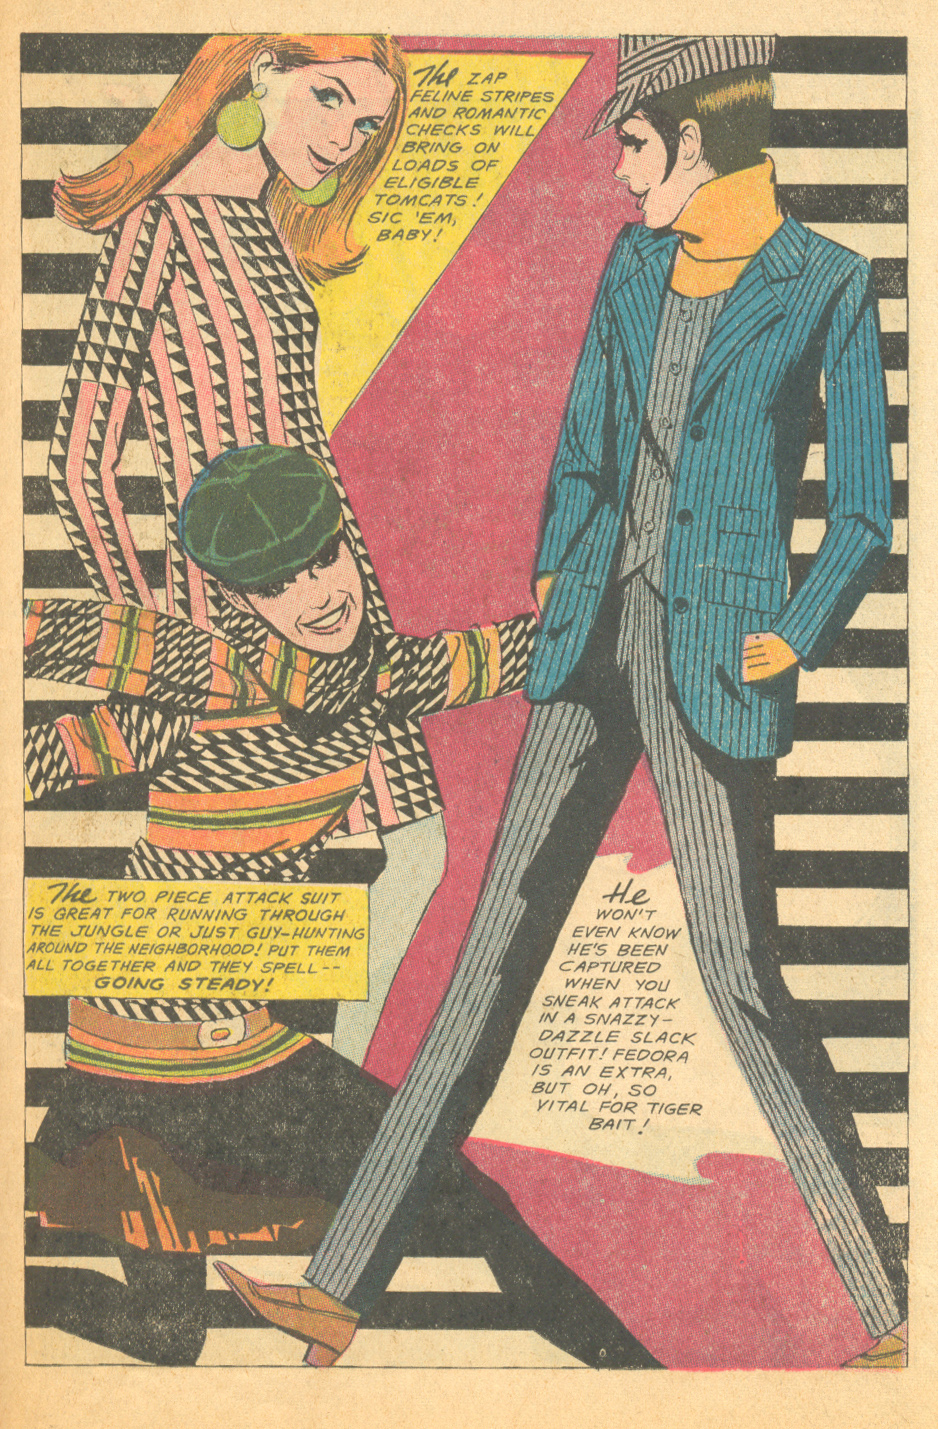 """""""Mad Mad Modes for Moderns""""  Falling in Love  #90 (April 1967)  Illustrated by Tony Abruzzo"""